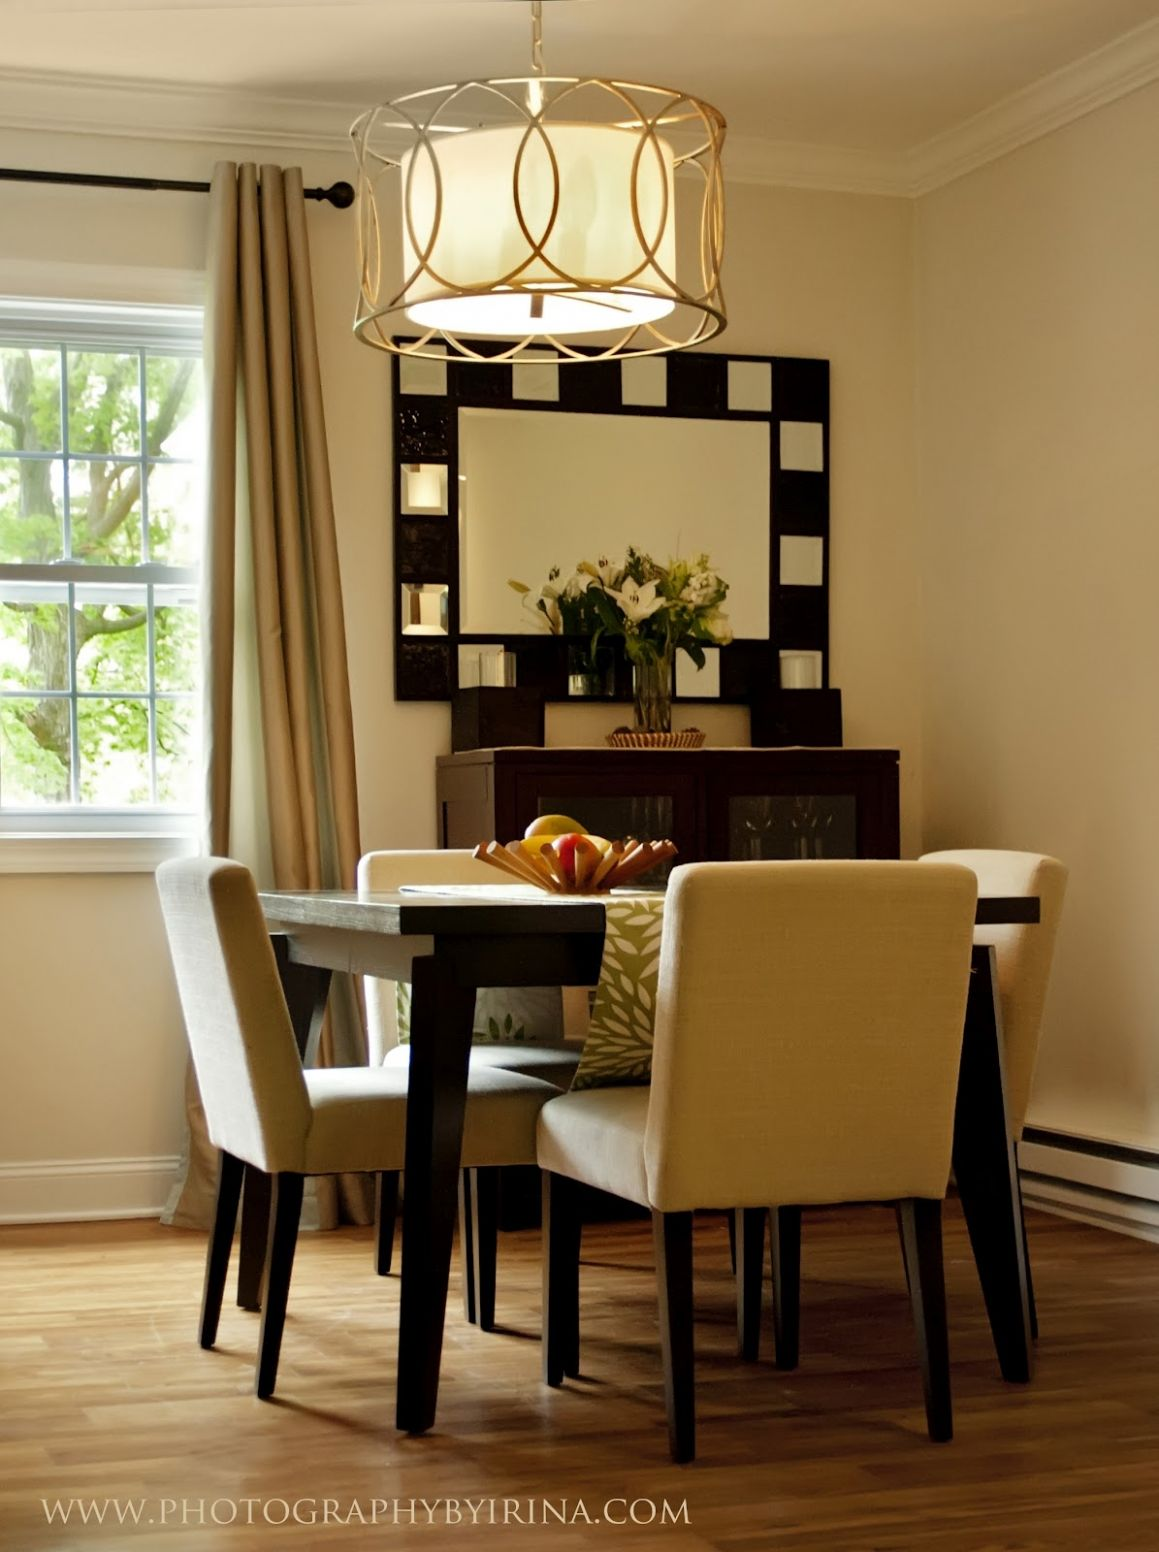 Small Living And Dining Room Ideas on with HD Resolution 9x9 ..